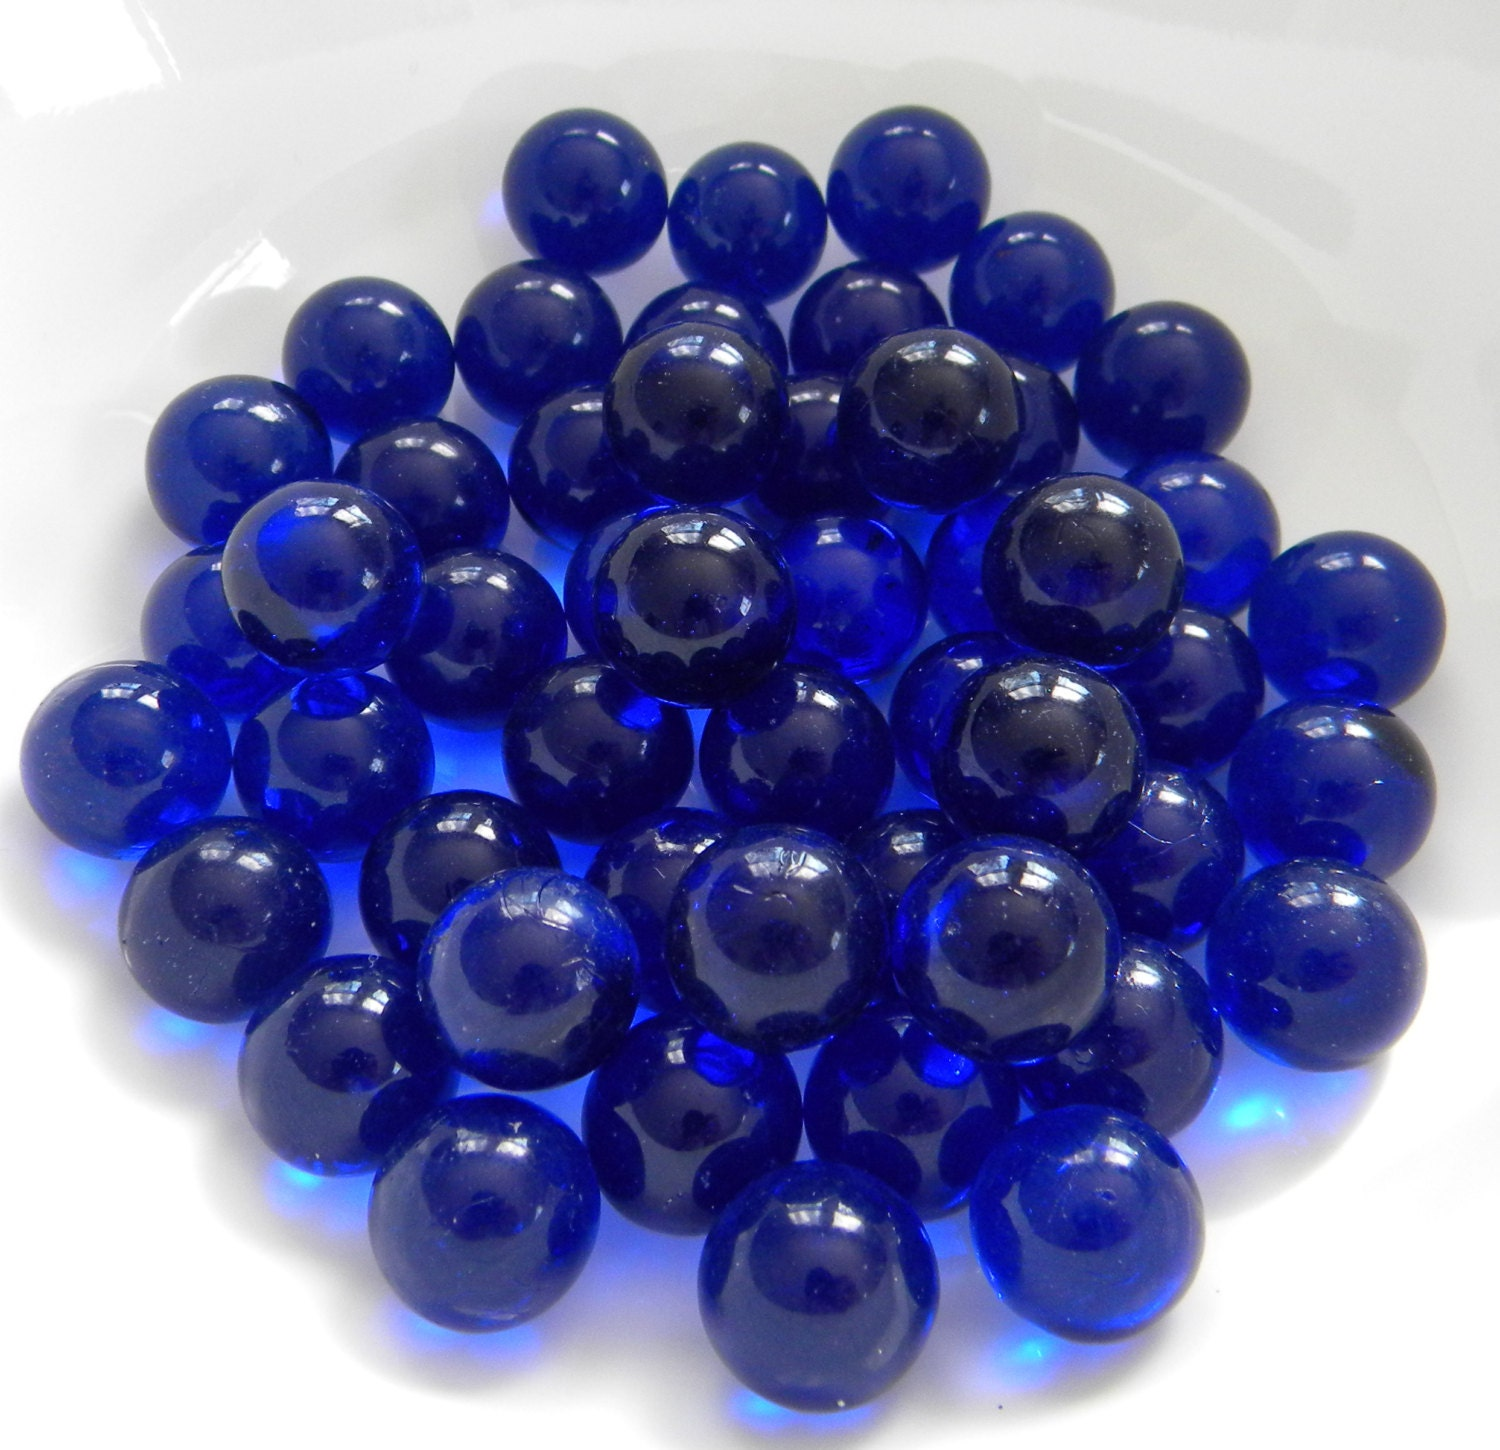 50 round glass gems cobalt blue for crafts for Glass jewels for crafts